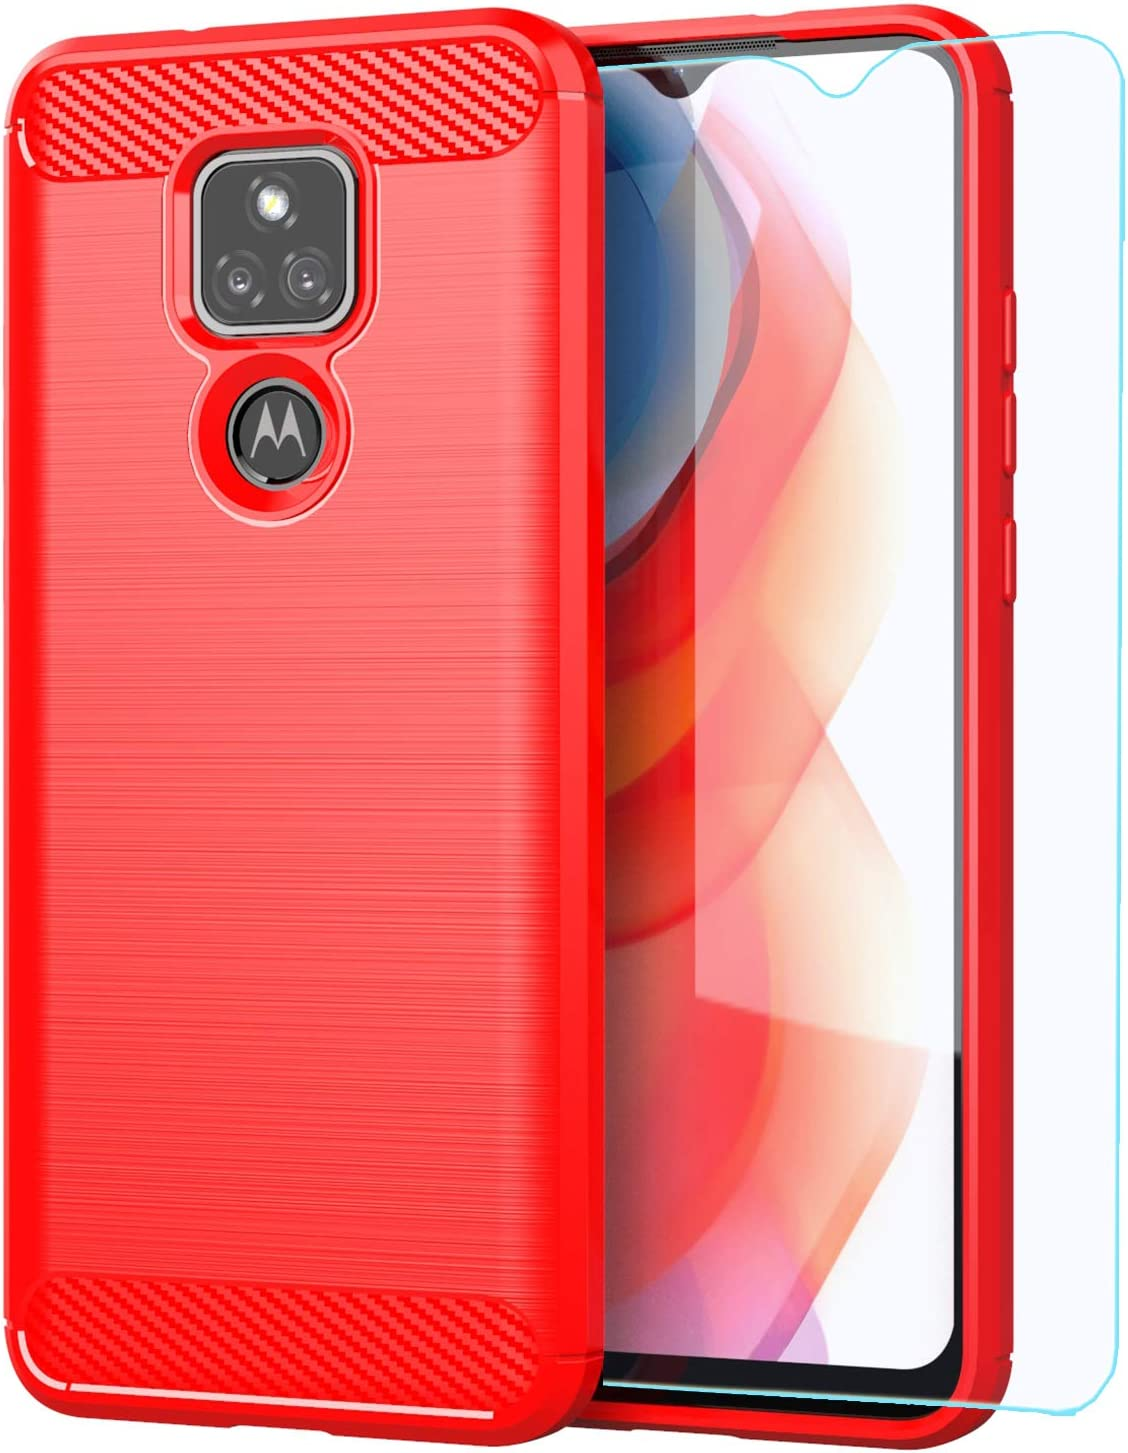 Moto G Play 2021 case,Motorola G Play 2021 case,with HD Screen Protector,M MAIKEZI Soft TPU Slim Fashion Non-Slip Protective Phone Case Cover for Motorola Moto G Play 2021 (Red Brushed TPU)